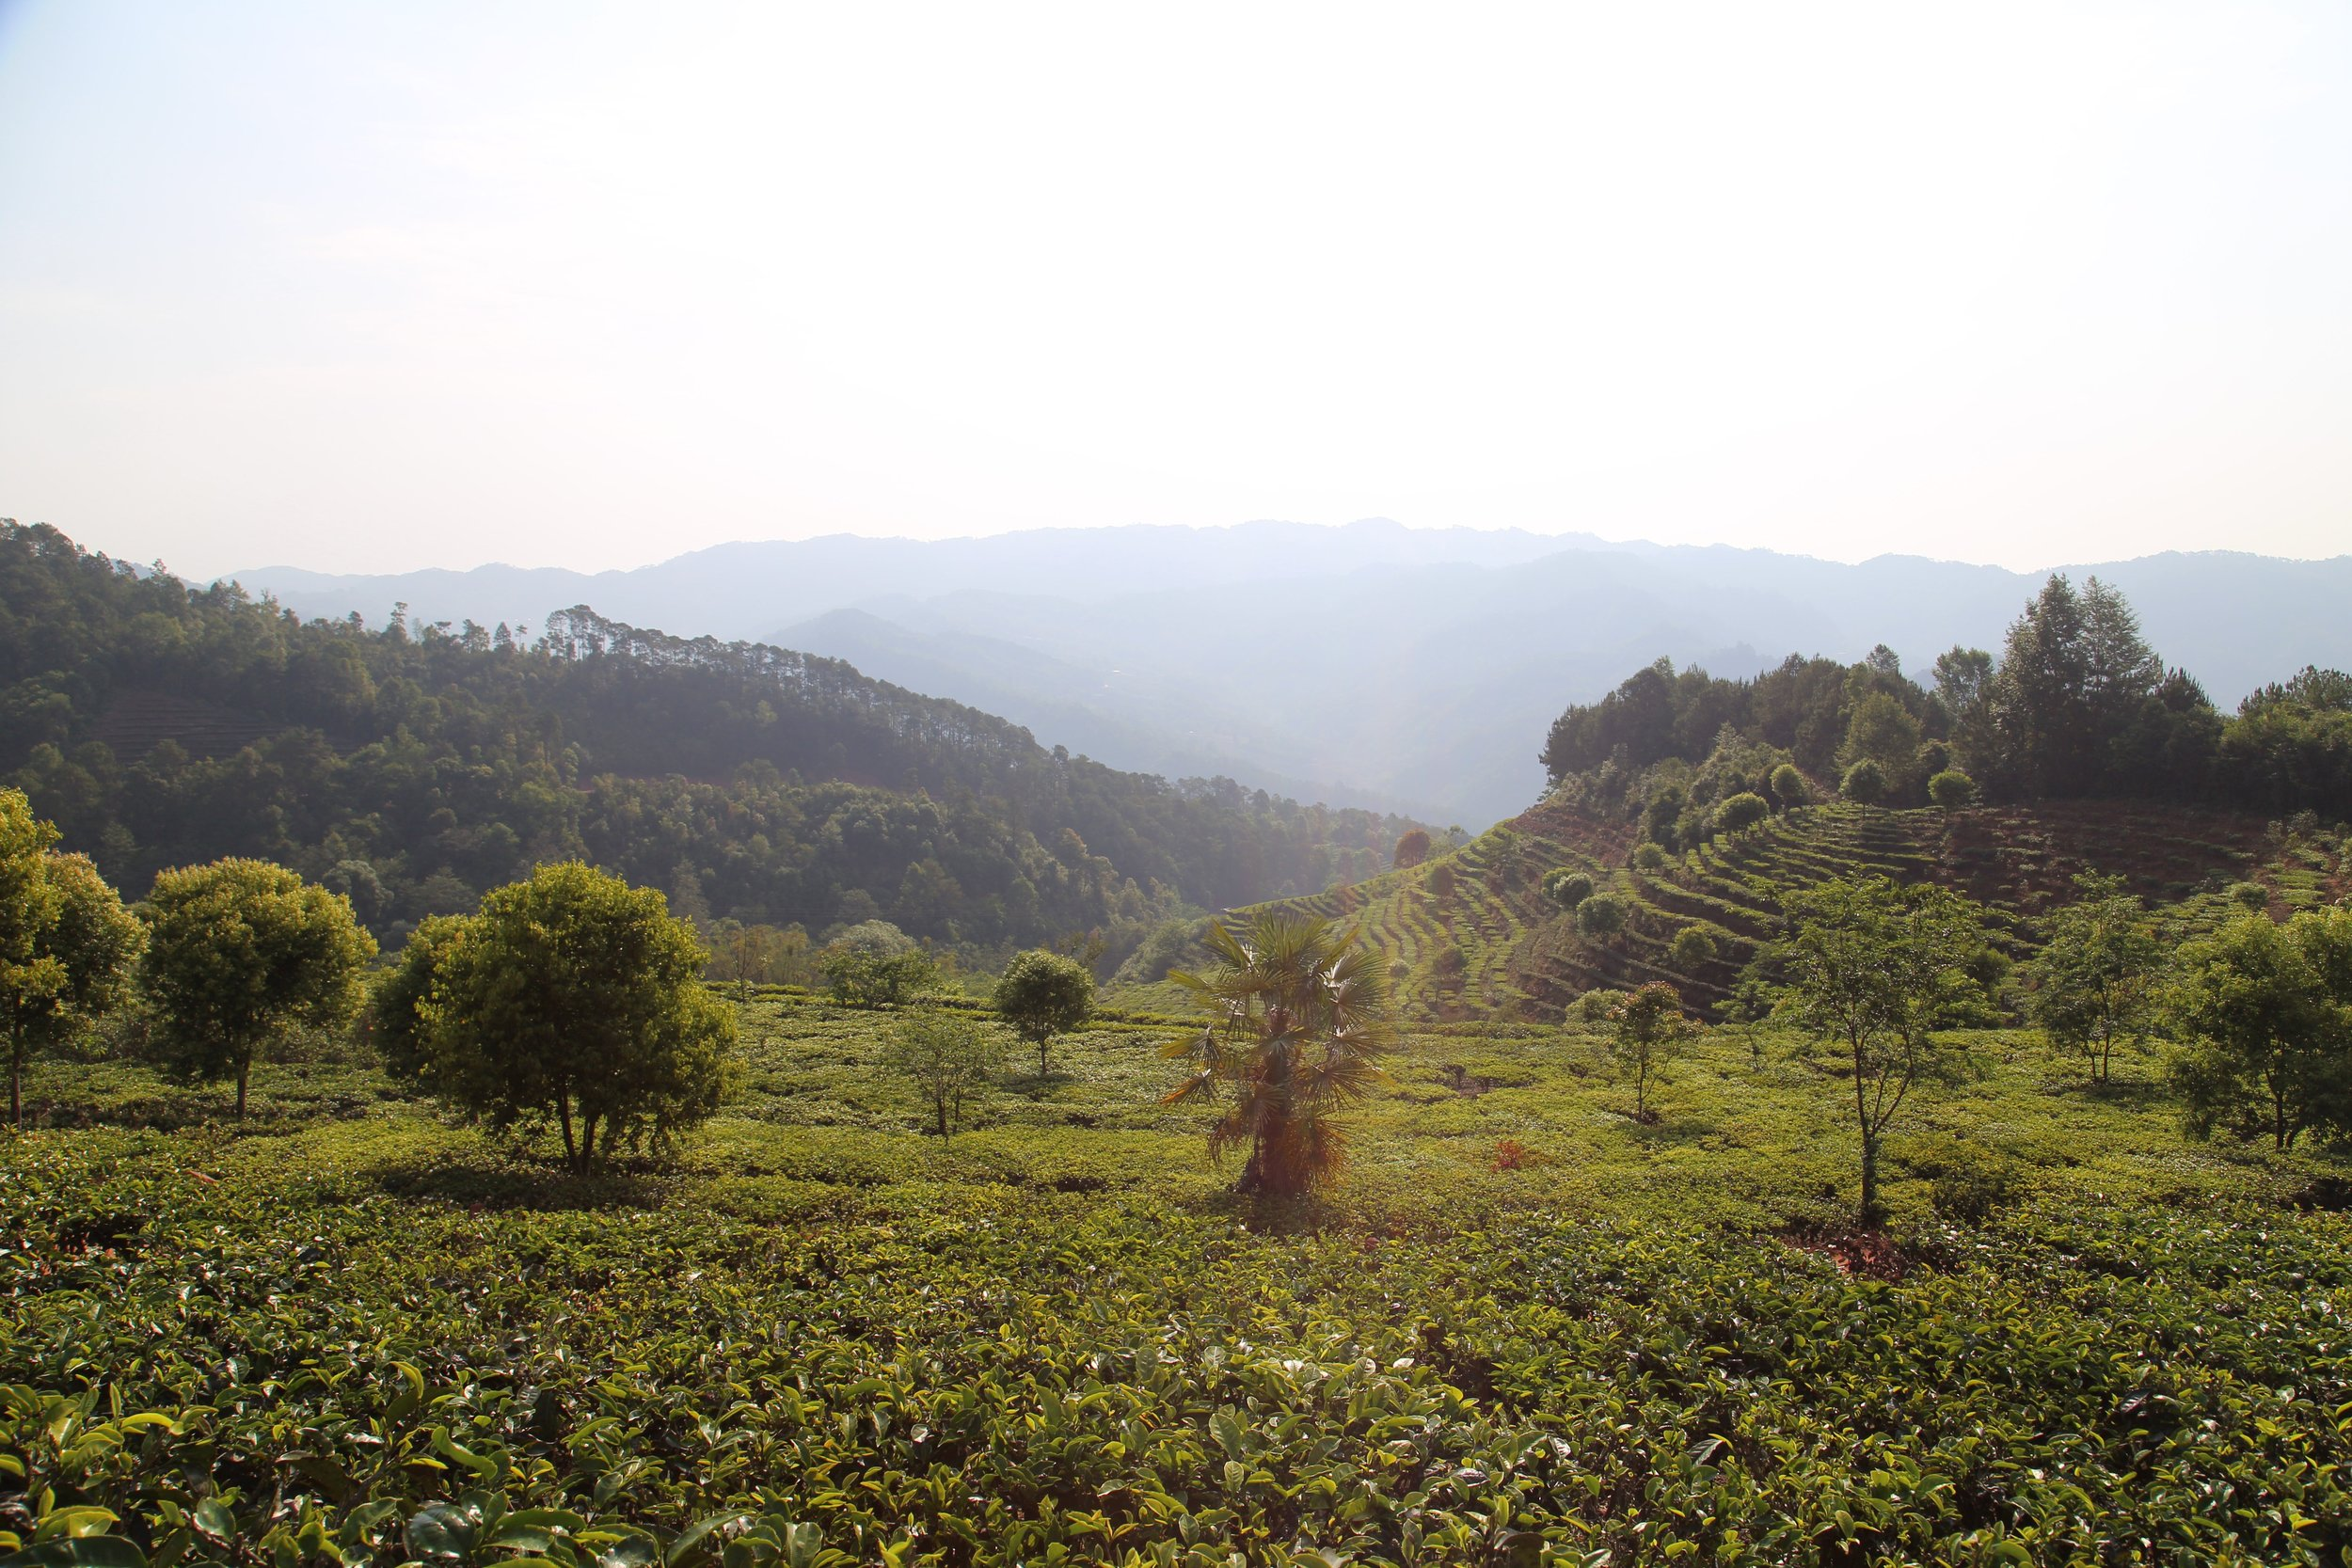 Our tea gardens follow a strict harvesting calendar. - Tea is an evergreen plant-i.e., it stays green all year-long. But the most sought after tea harvest is the first spring harvest. Harvesting spring tea buds is time-sensitive and requires specific skills.